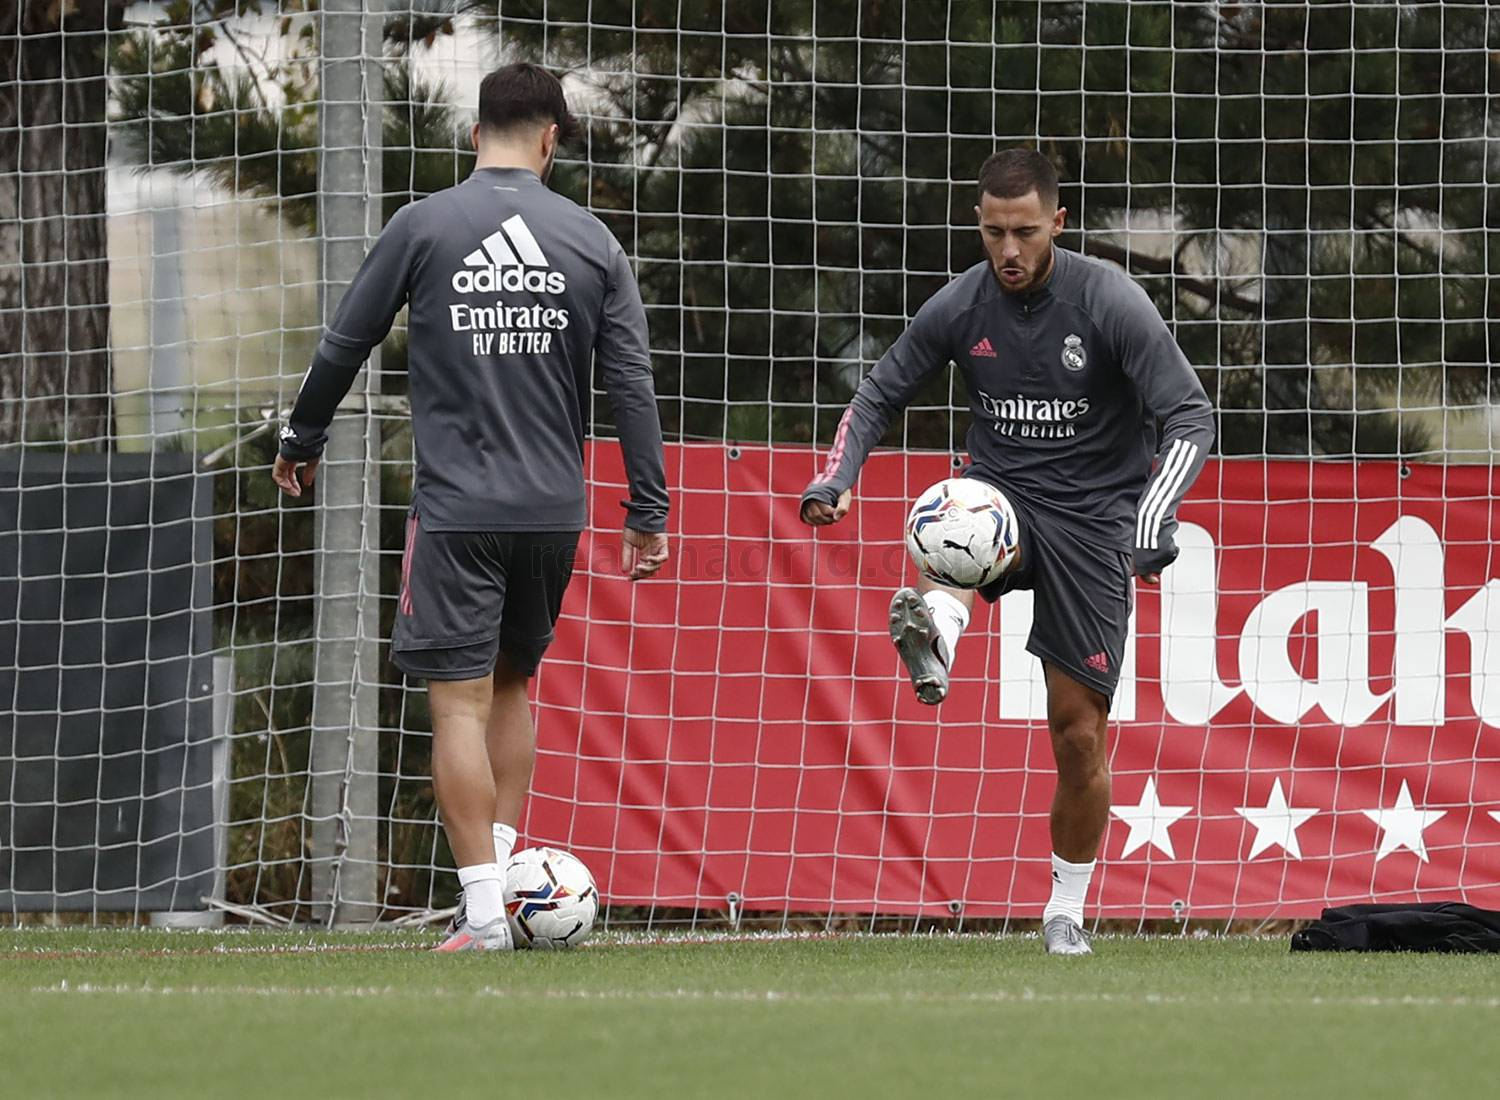 Real Madrid - Entrenamiento del Real Madrid  - 18-09-2020